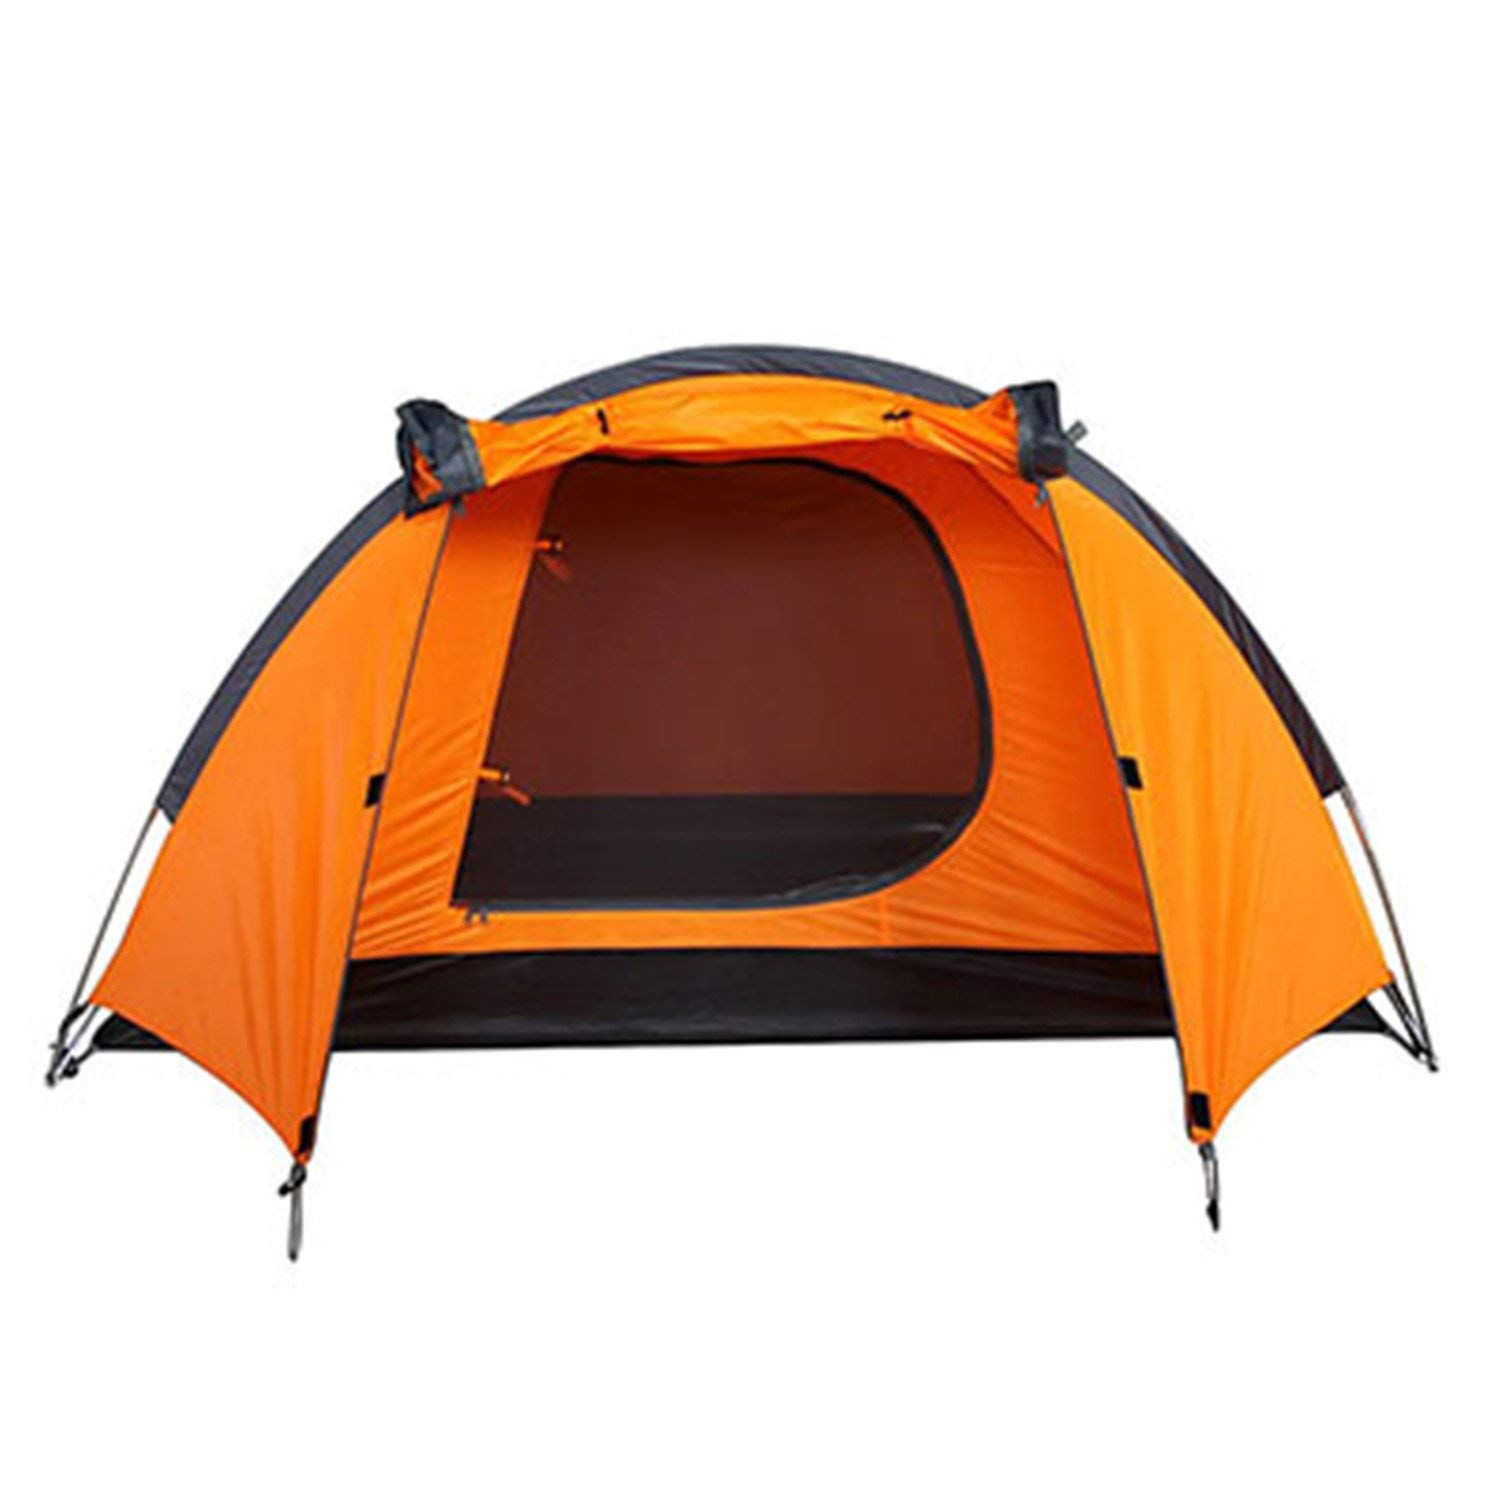 Nutsima Waterproof Durable 2 3 person Nutsima Outdoor camping tent Hiking Beach Tent Tourist Bedroom Travel Lightweight NEW china barraca tend